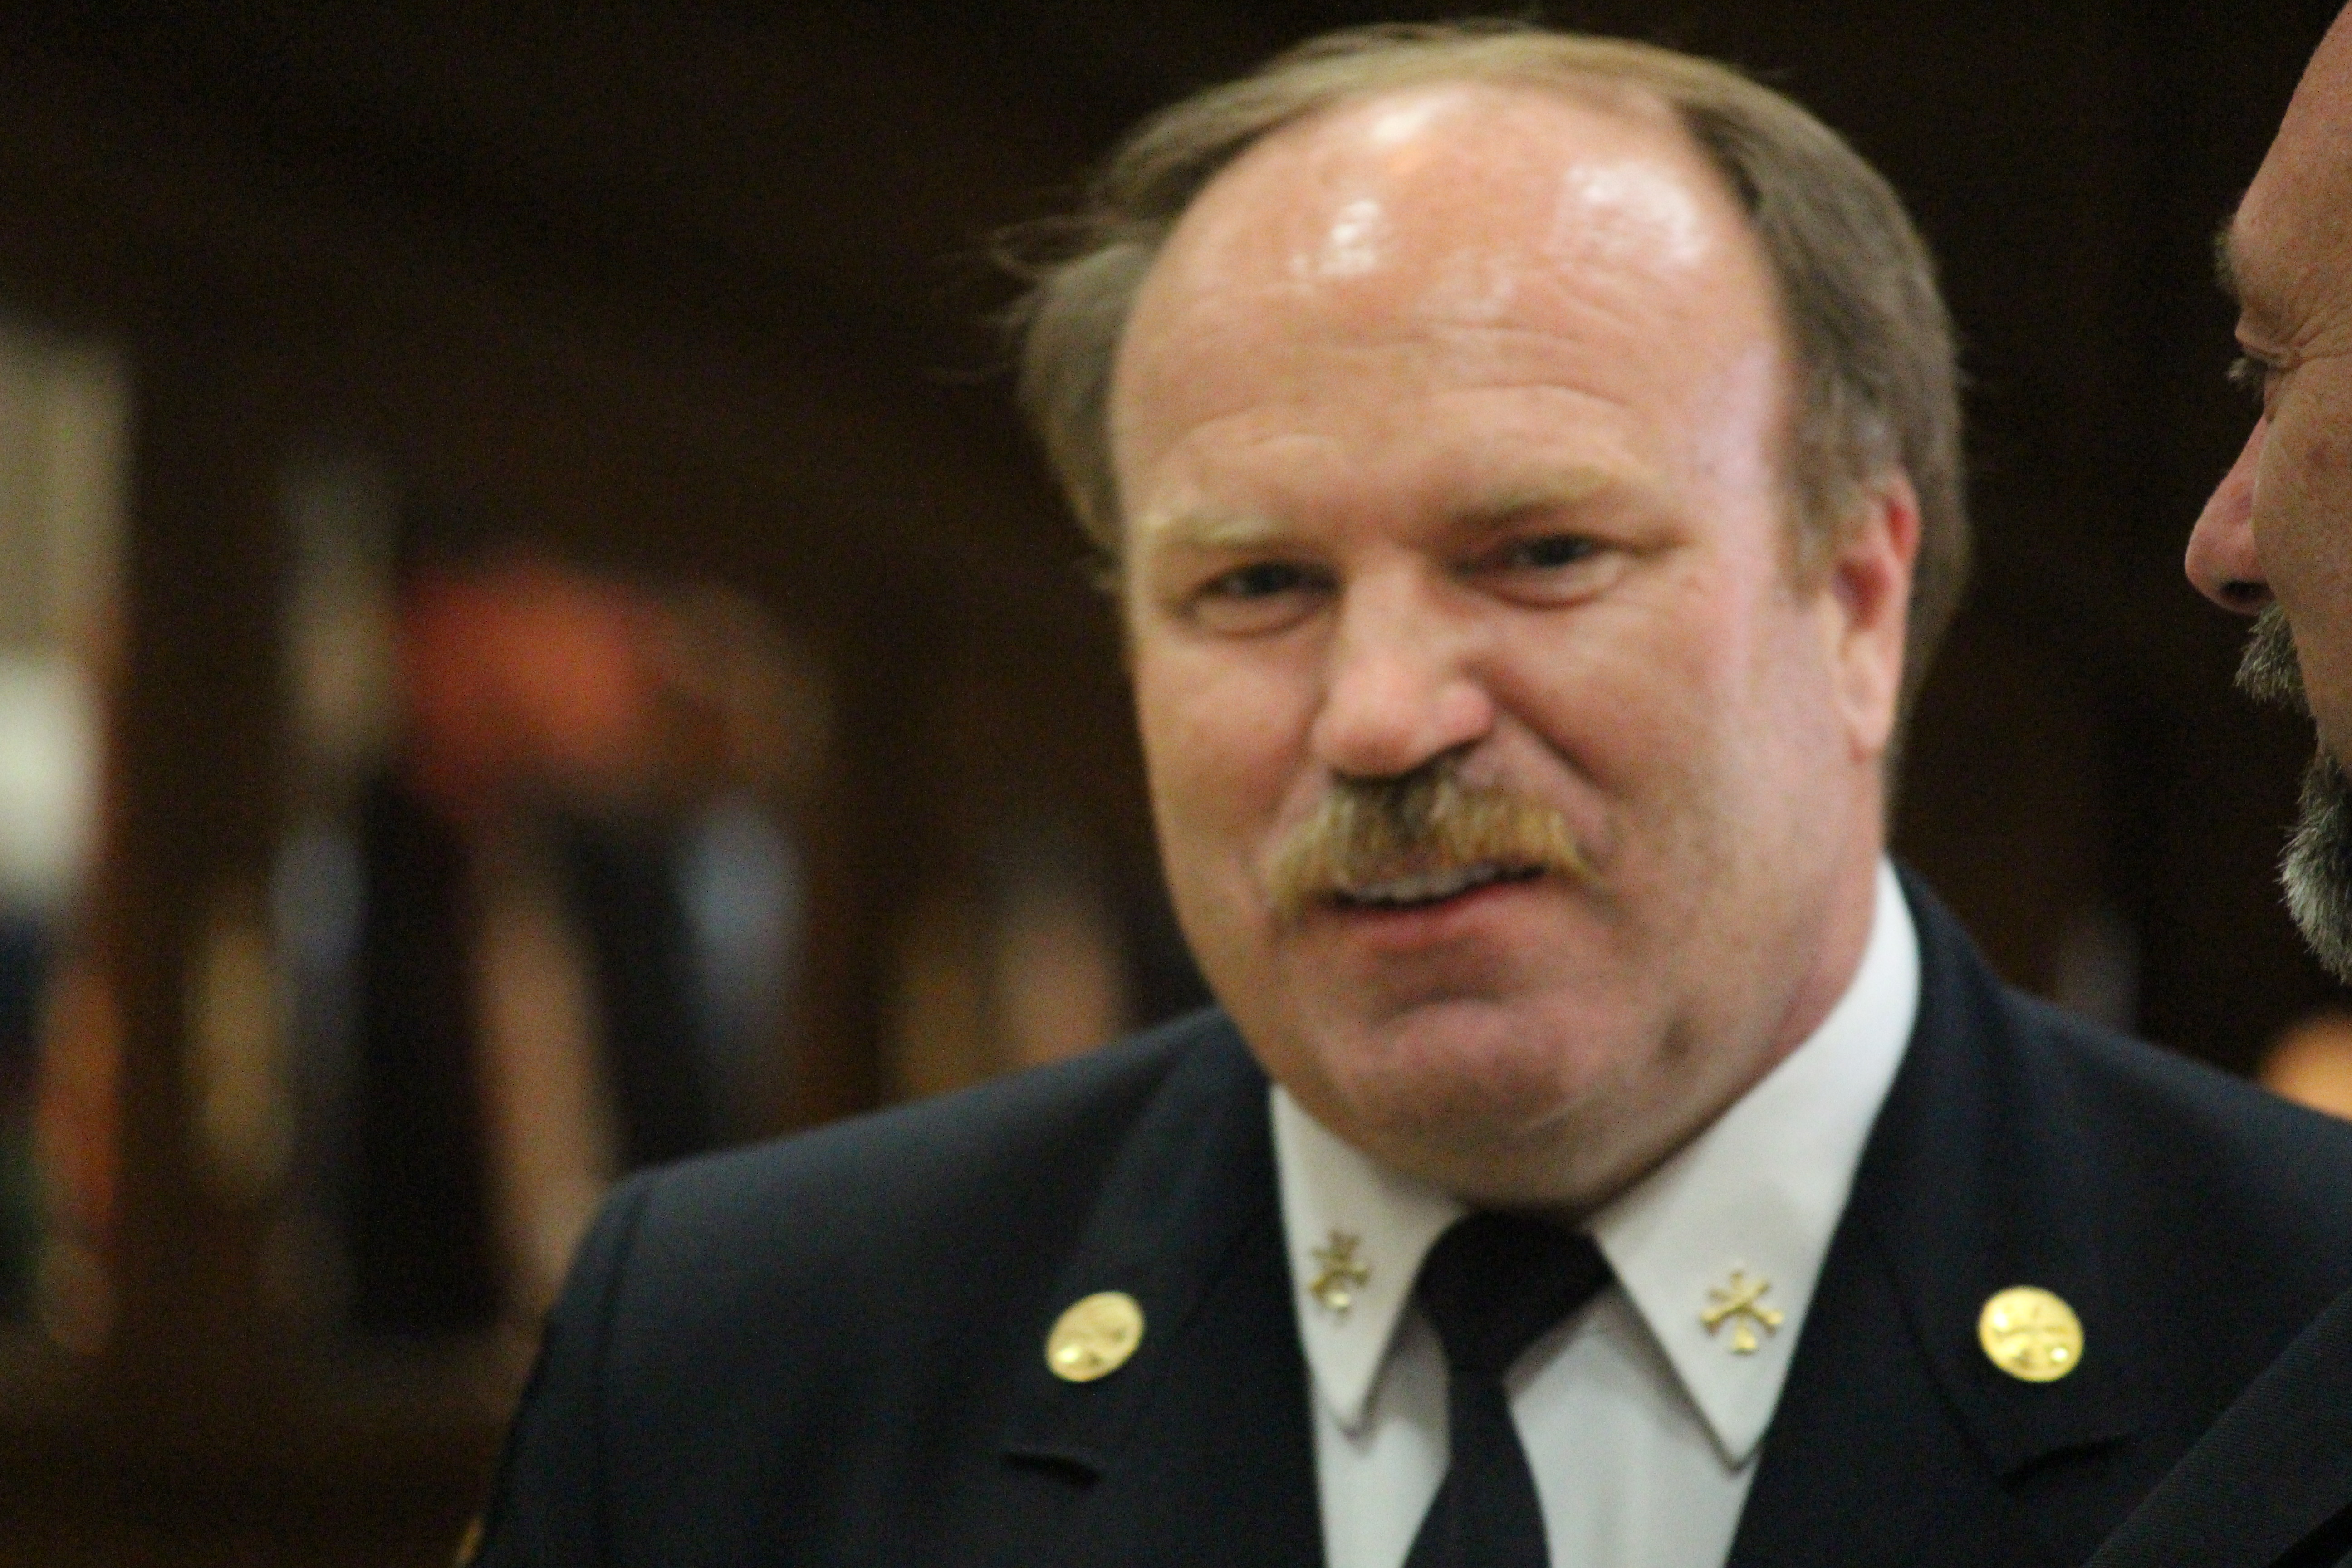 BlackburnNews.com file photo of acting Windsor fire assistant chief Dave Hart, July 2, 2015. (Photo by Jason Viau)